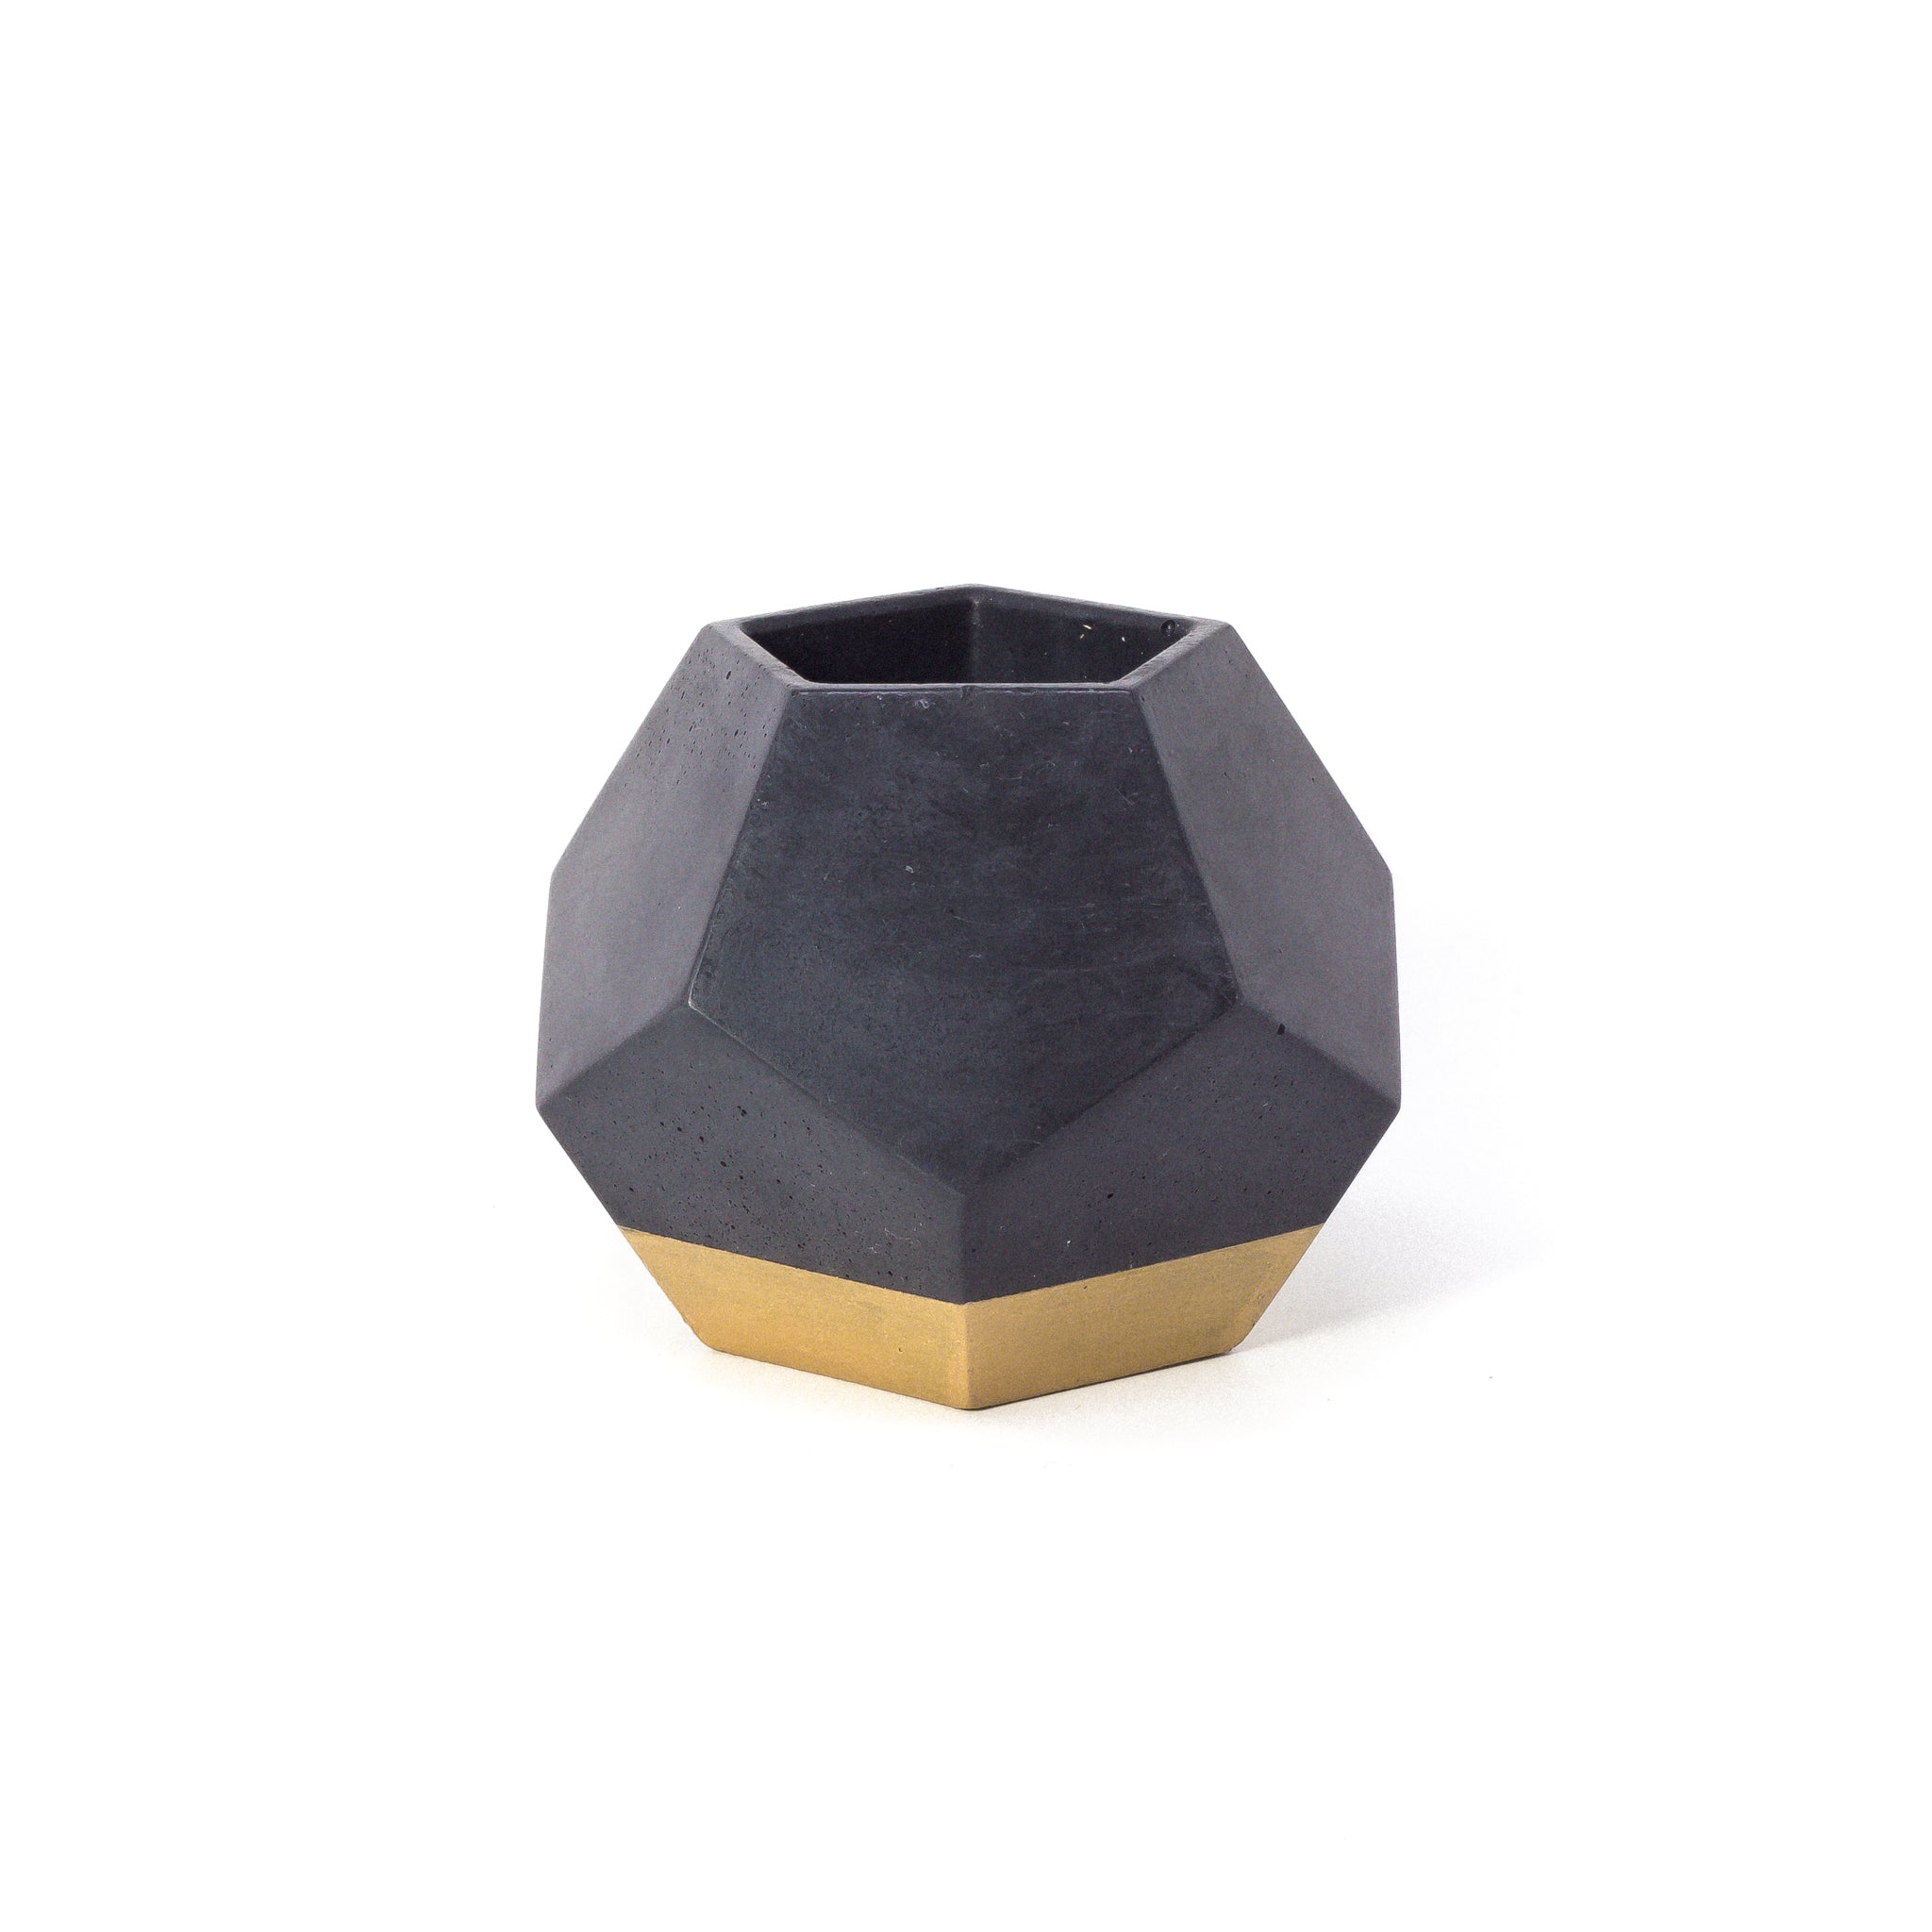 Concrete Dodecahedron Planter: Black & Gold